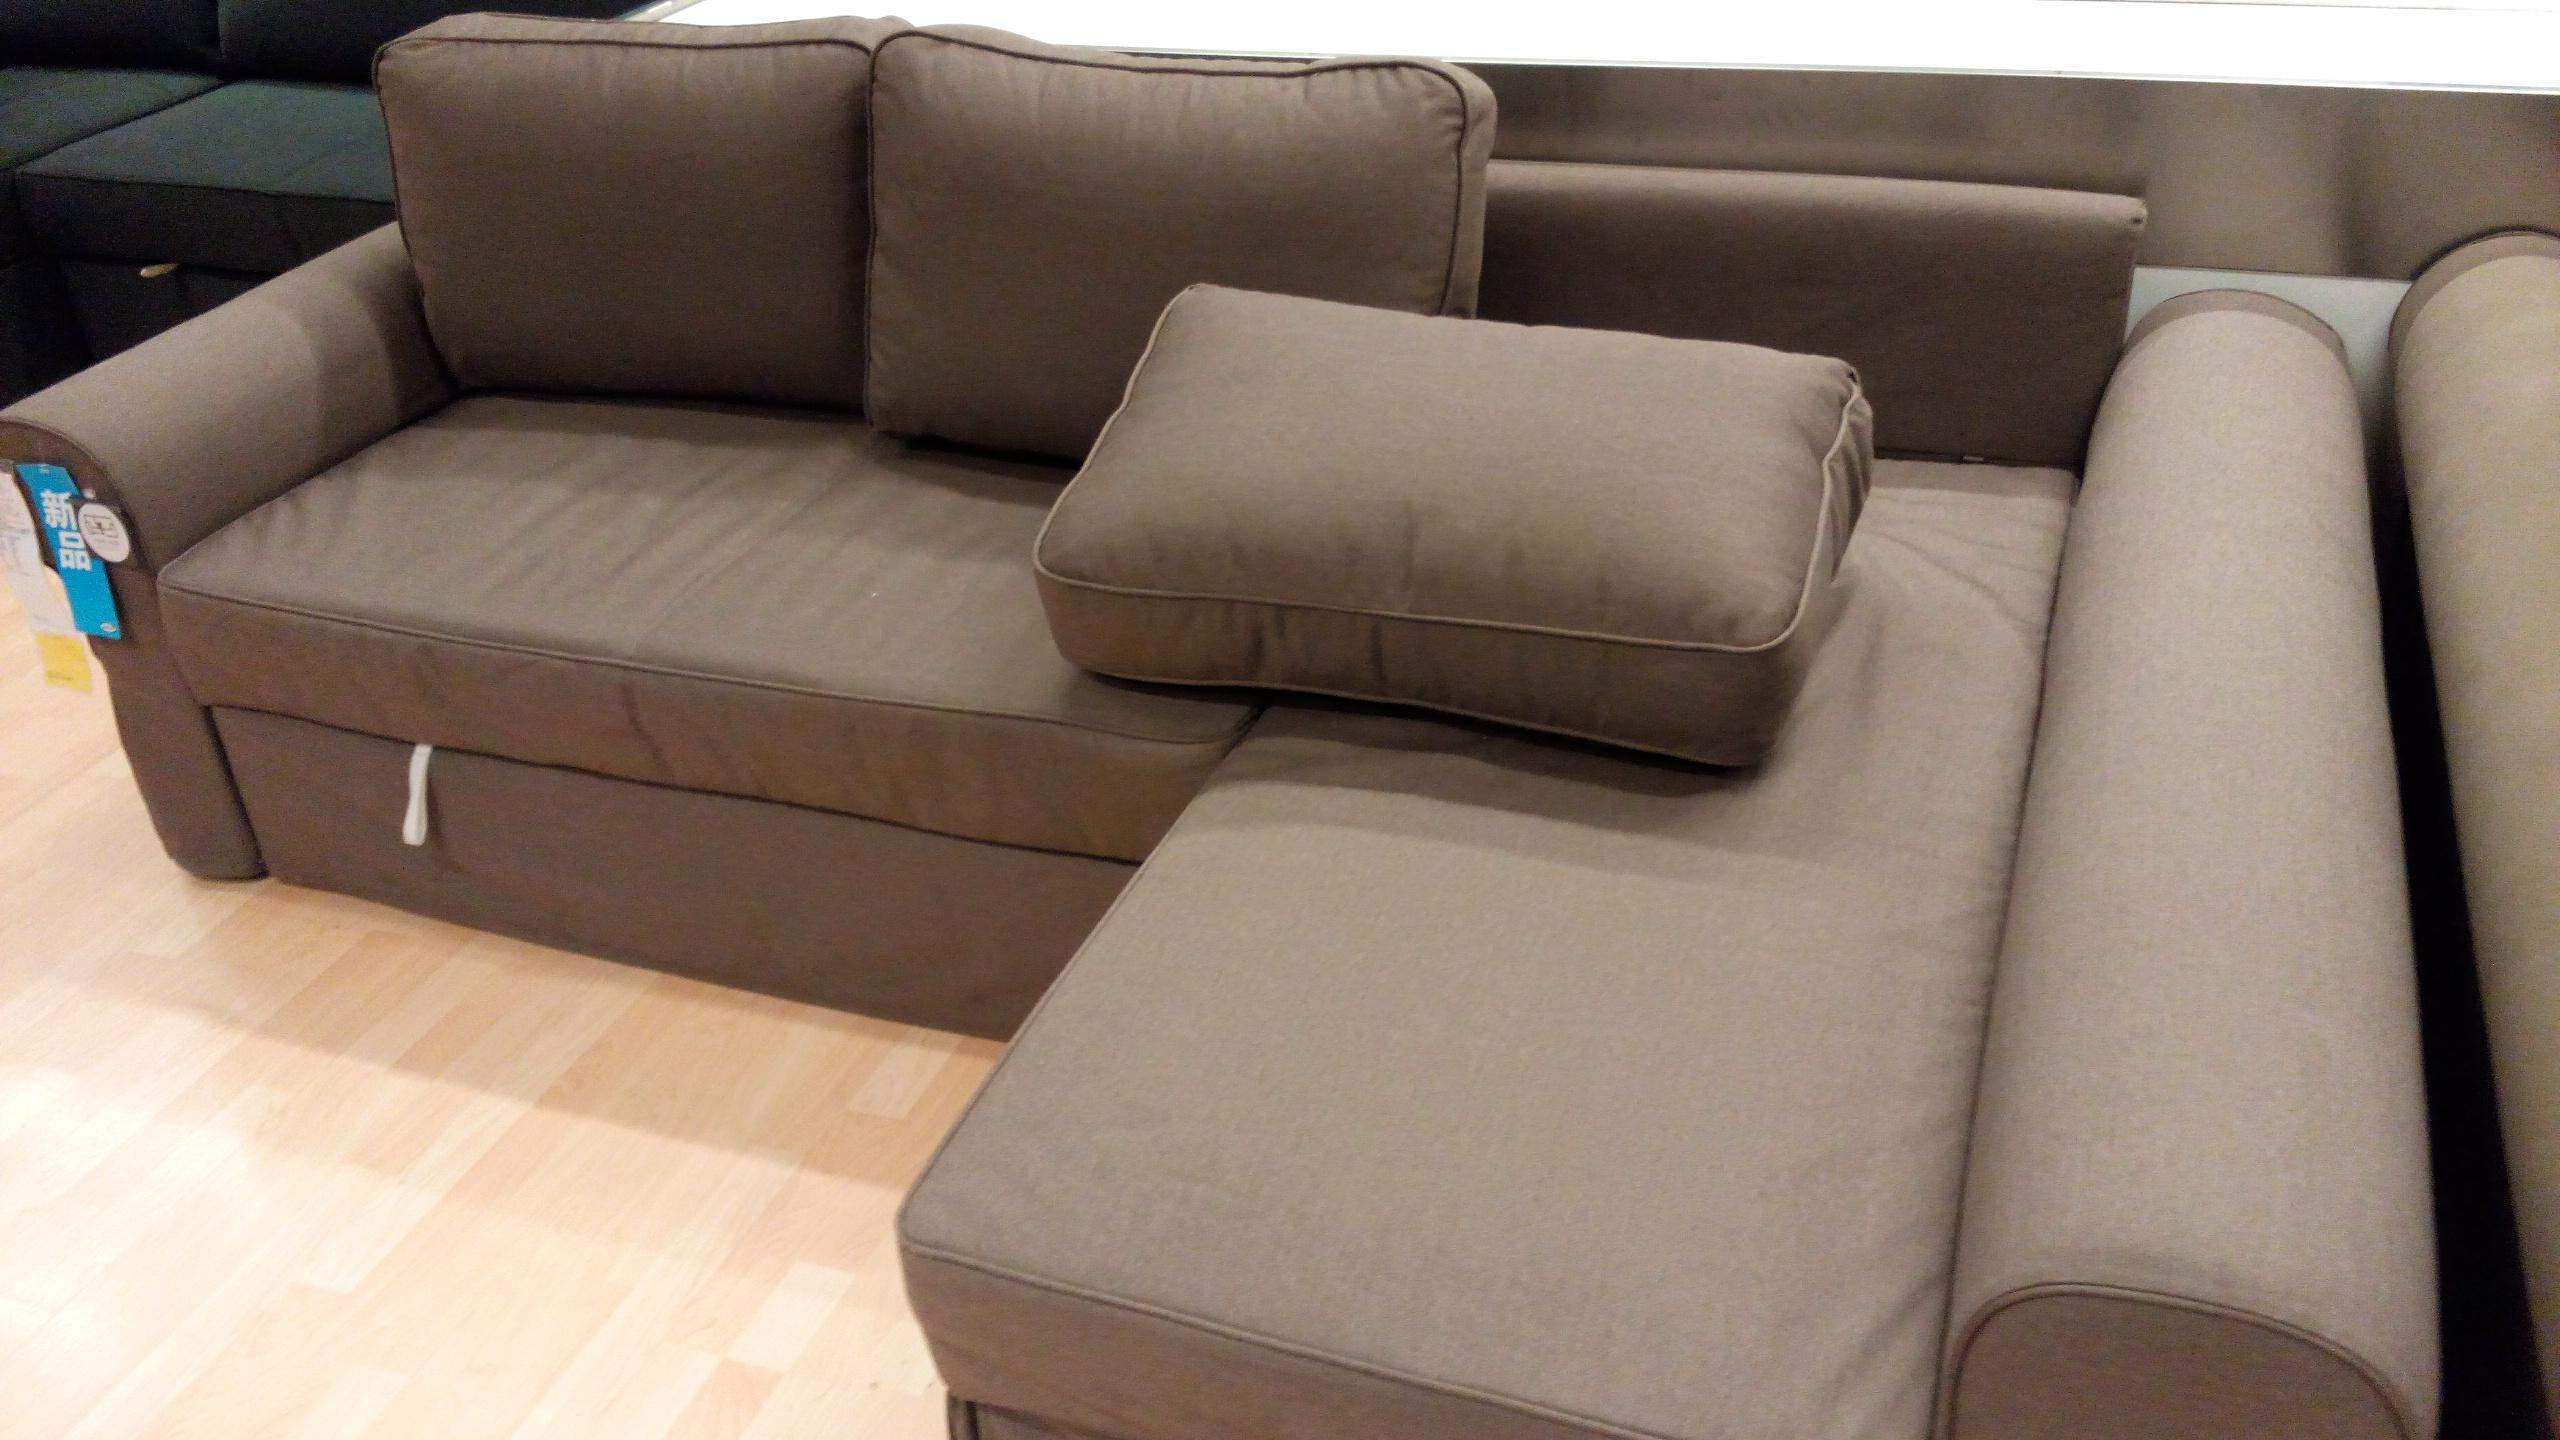 Ikea Vilasund And Backabro Review – Return Of The Sofa Bed Clones! Throughout Storage Sofa Ikea (Image 18 of 20)